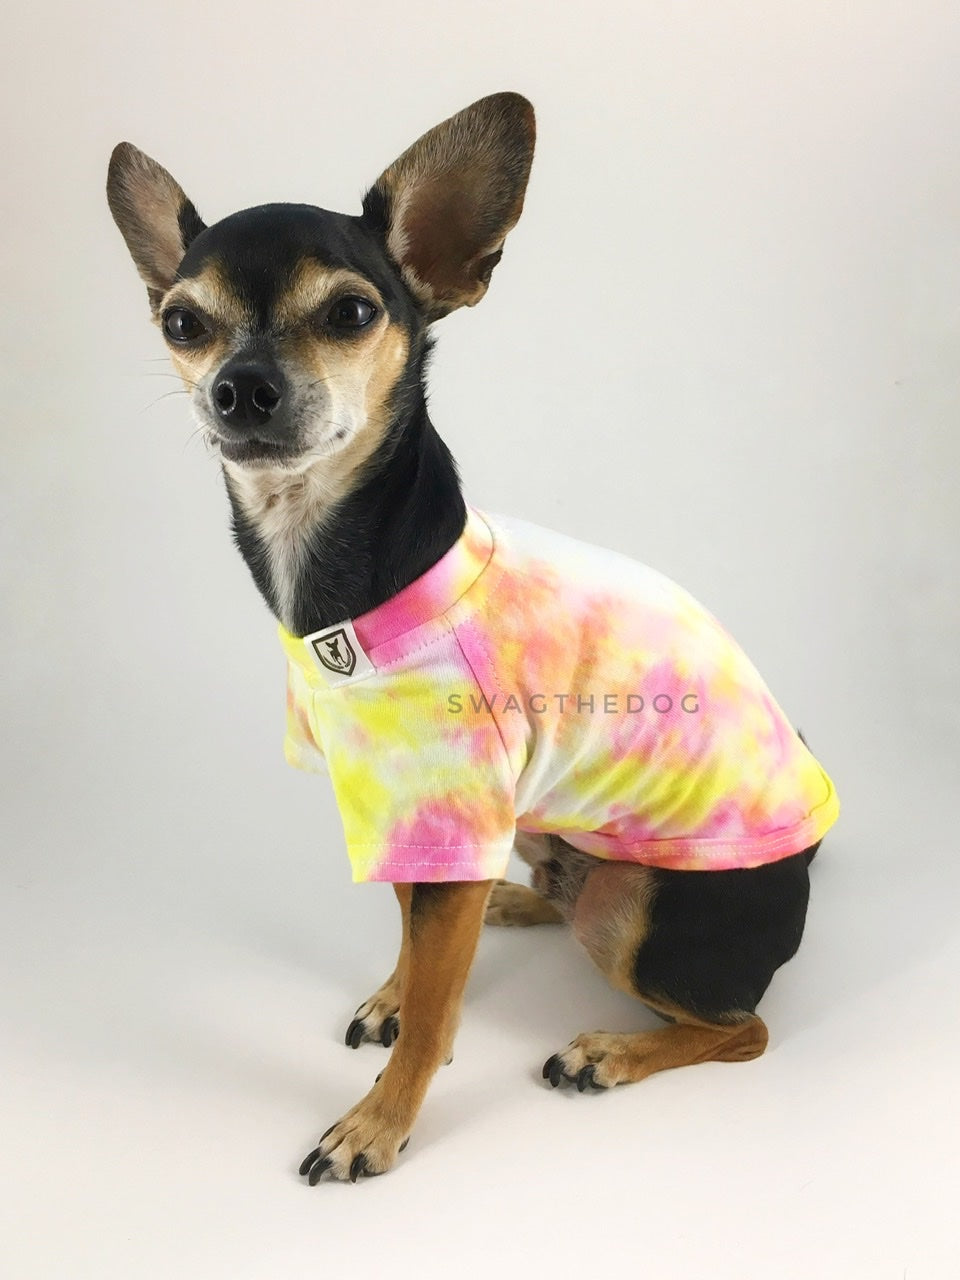 Swagadelic Cotton Candy Tie Dye Tee - Side profile of cute Chihuahua named Hugo in sitting position. wearing the hand tie-dyed tee with Pink and Yellow